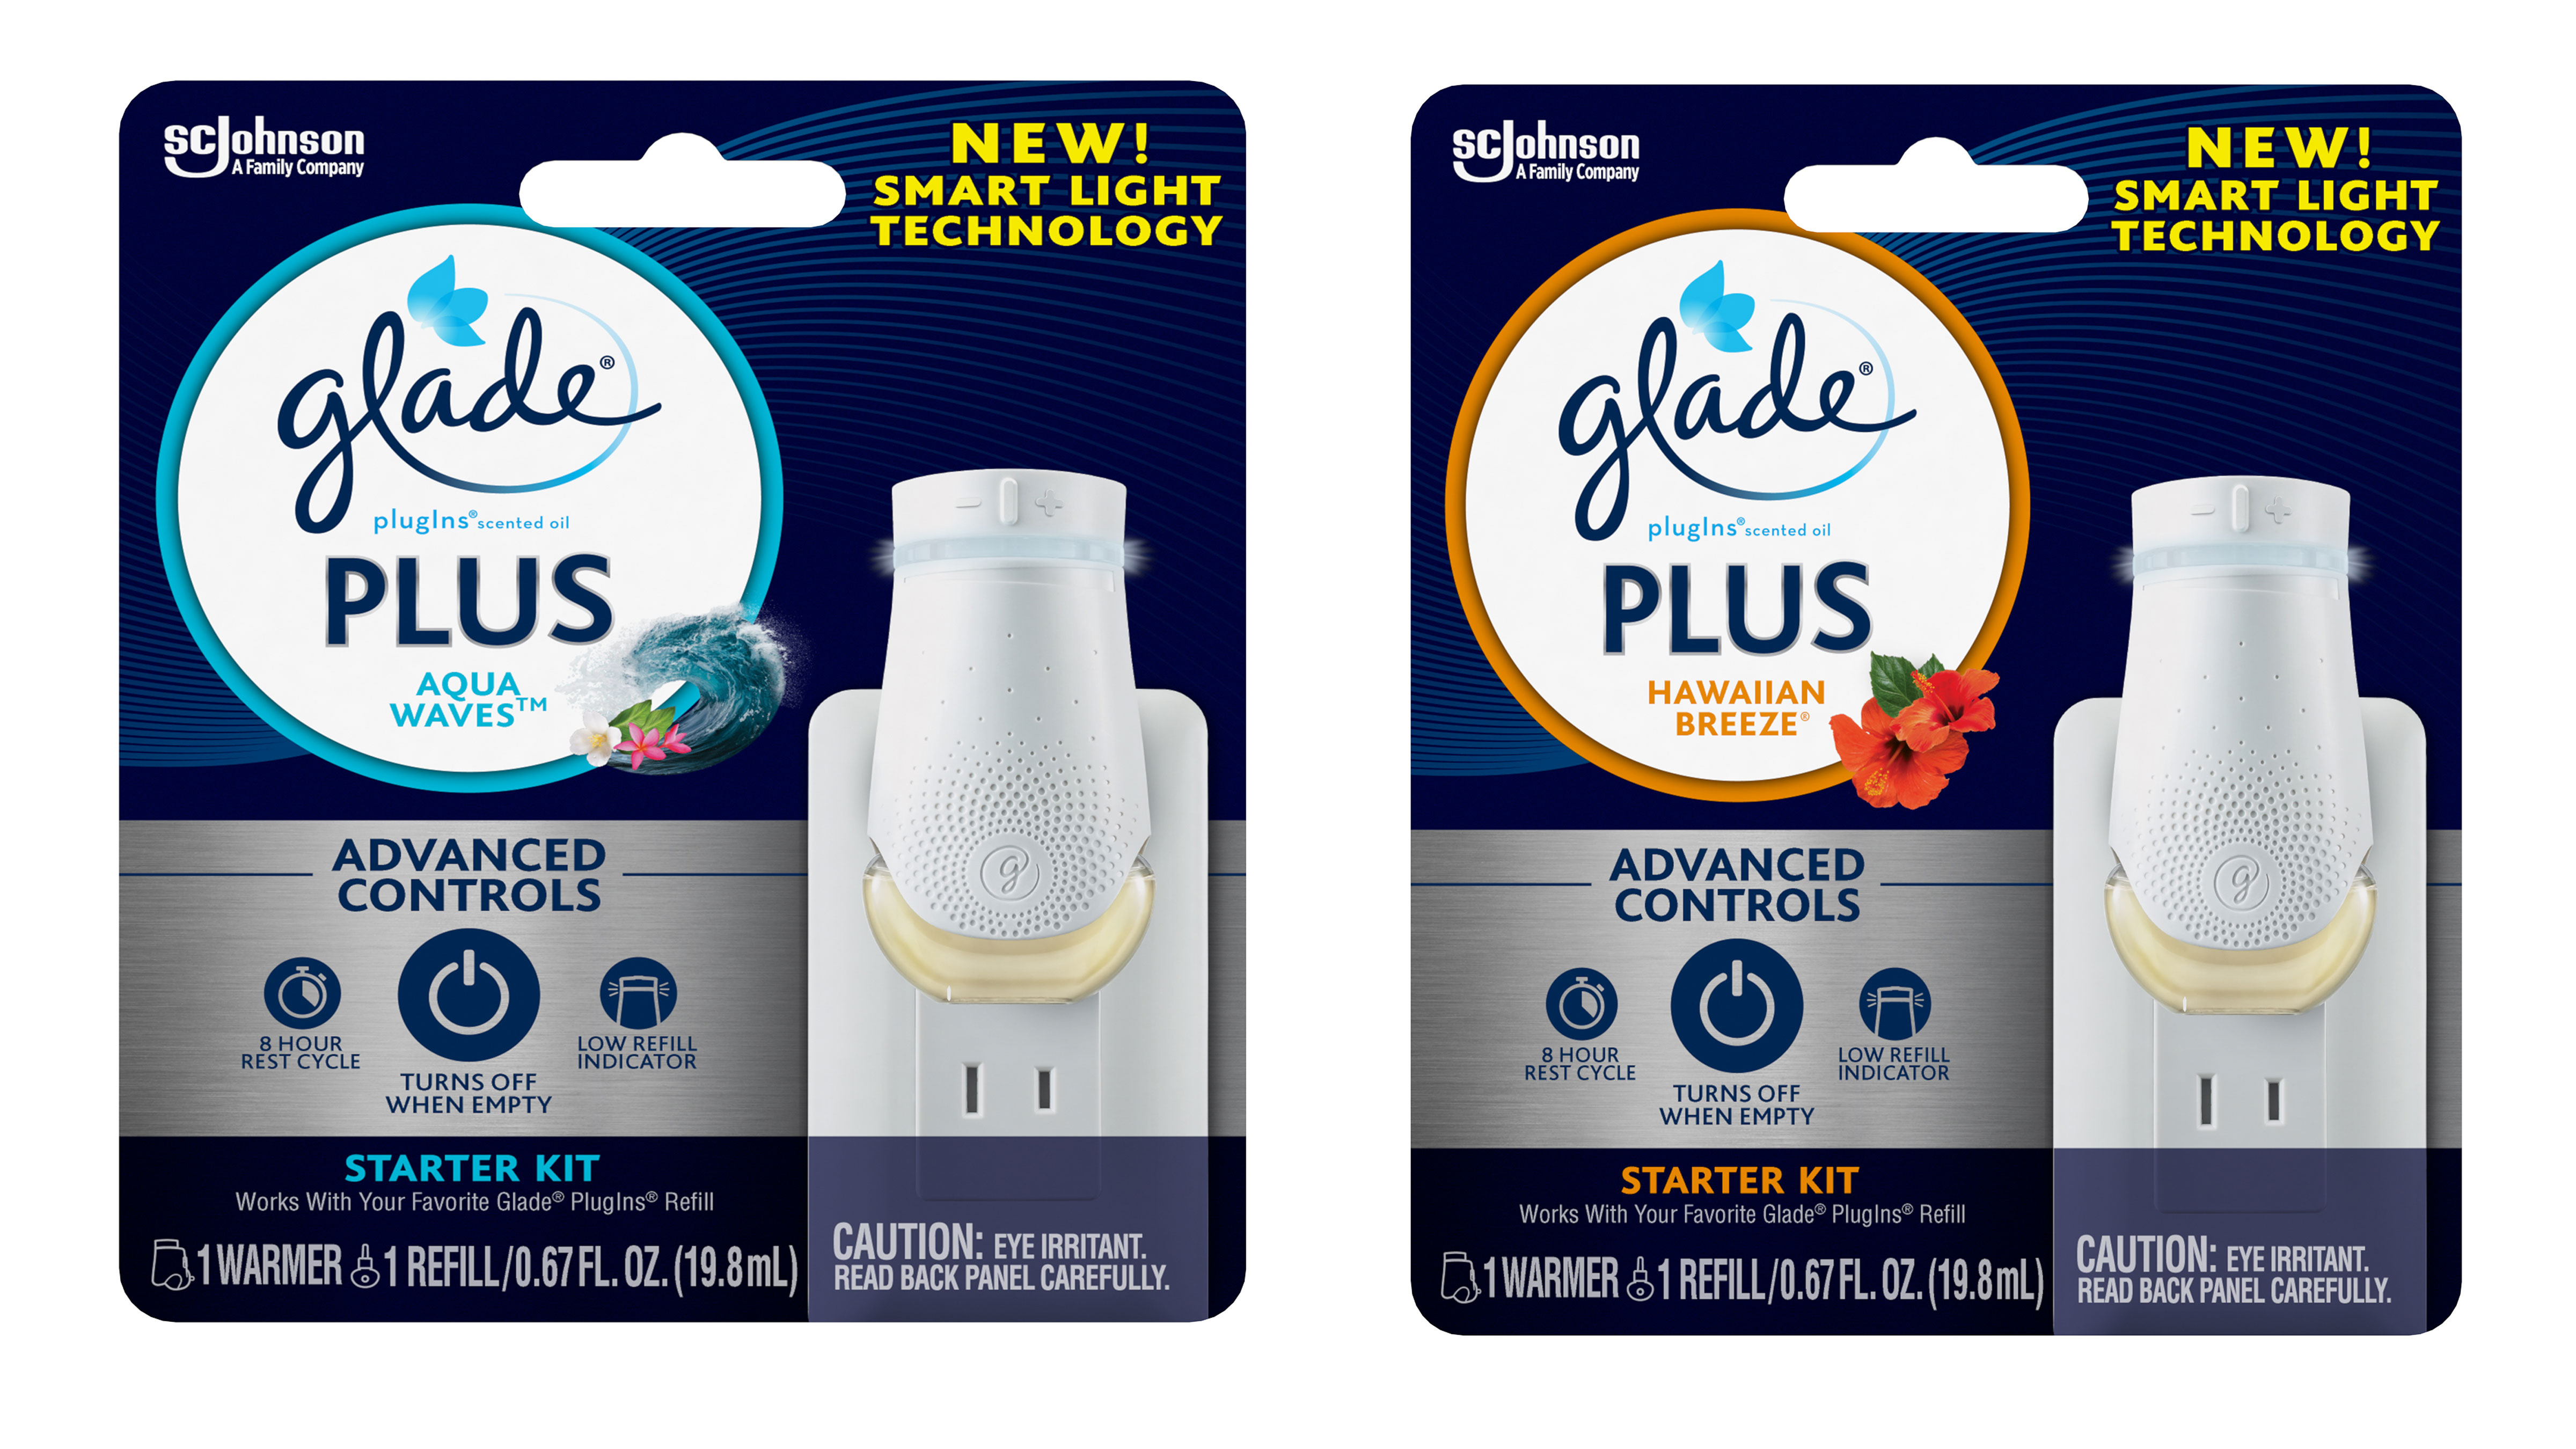 Energy-Efficient Glade® PlugIns® Scented Oil PLUS Launches in the United States - Hawaiian Breeze and Aqua Wave